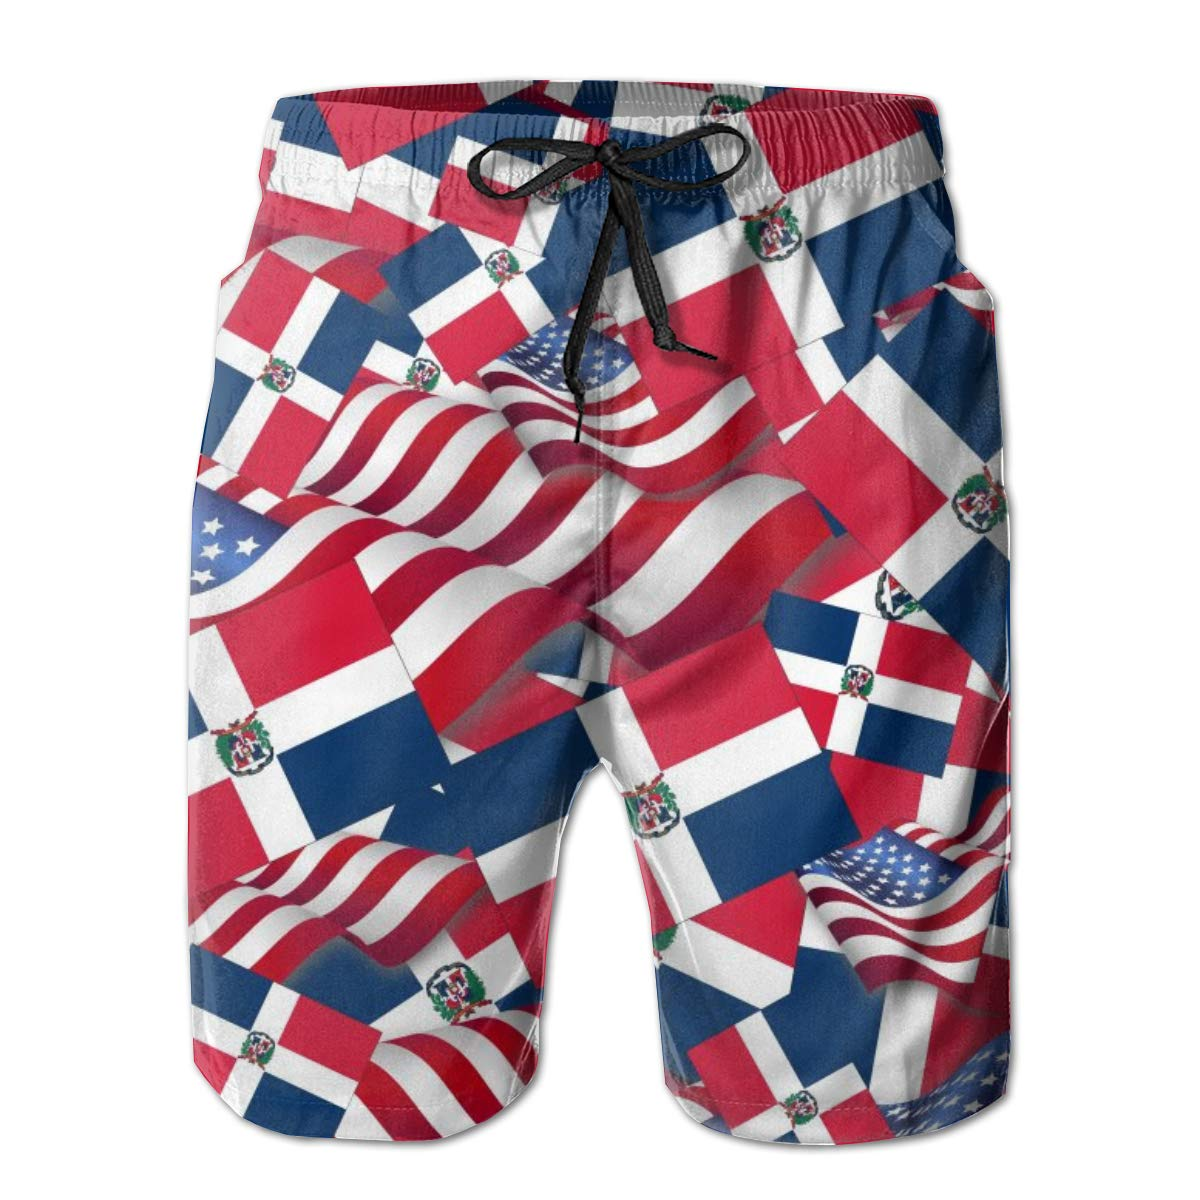 FUNSTYEET Mens Board Shorts Dominican Republic Flag with America Flag Holiday Swim Trunks Mesh Lining